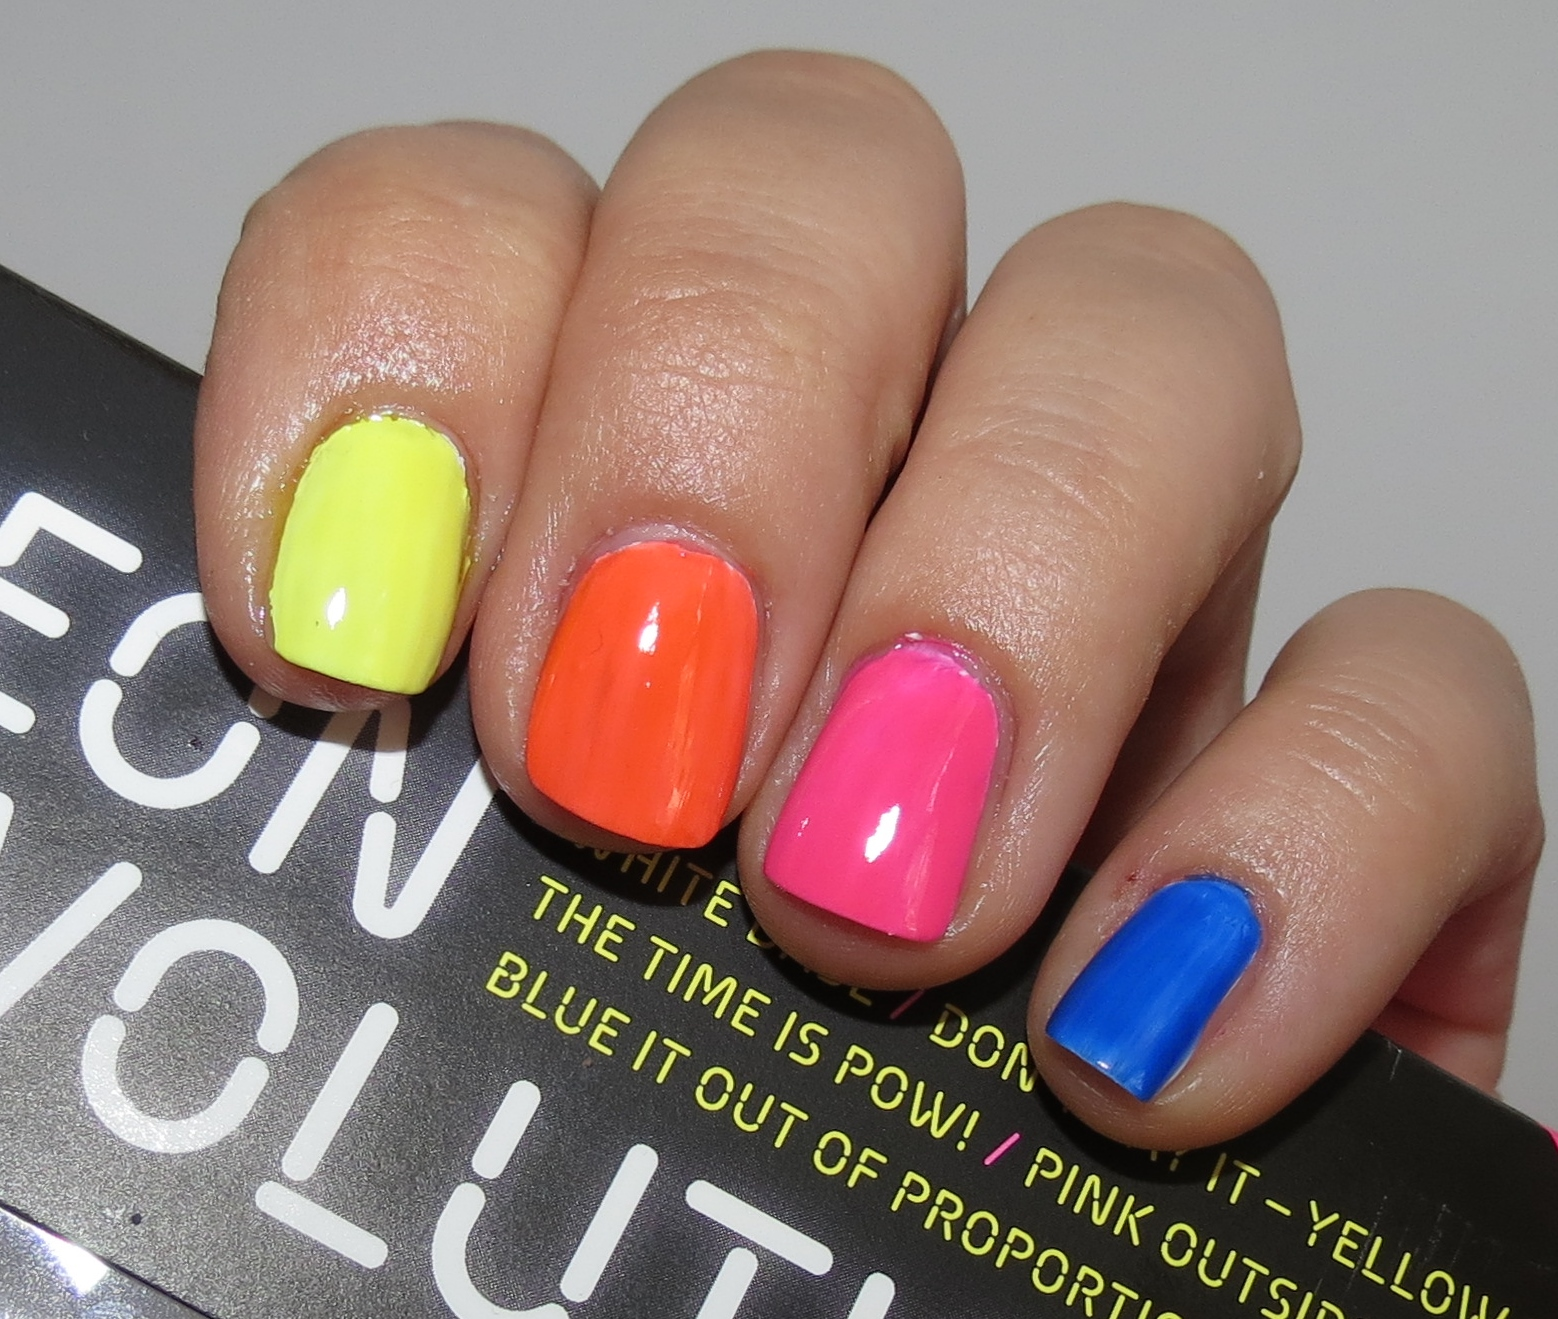 OPI Neon Revolution Nail Polish Swatches Review